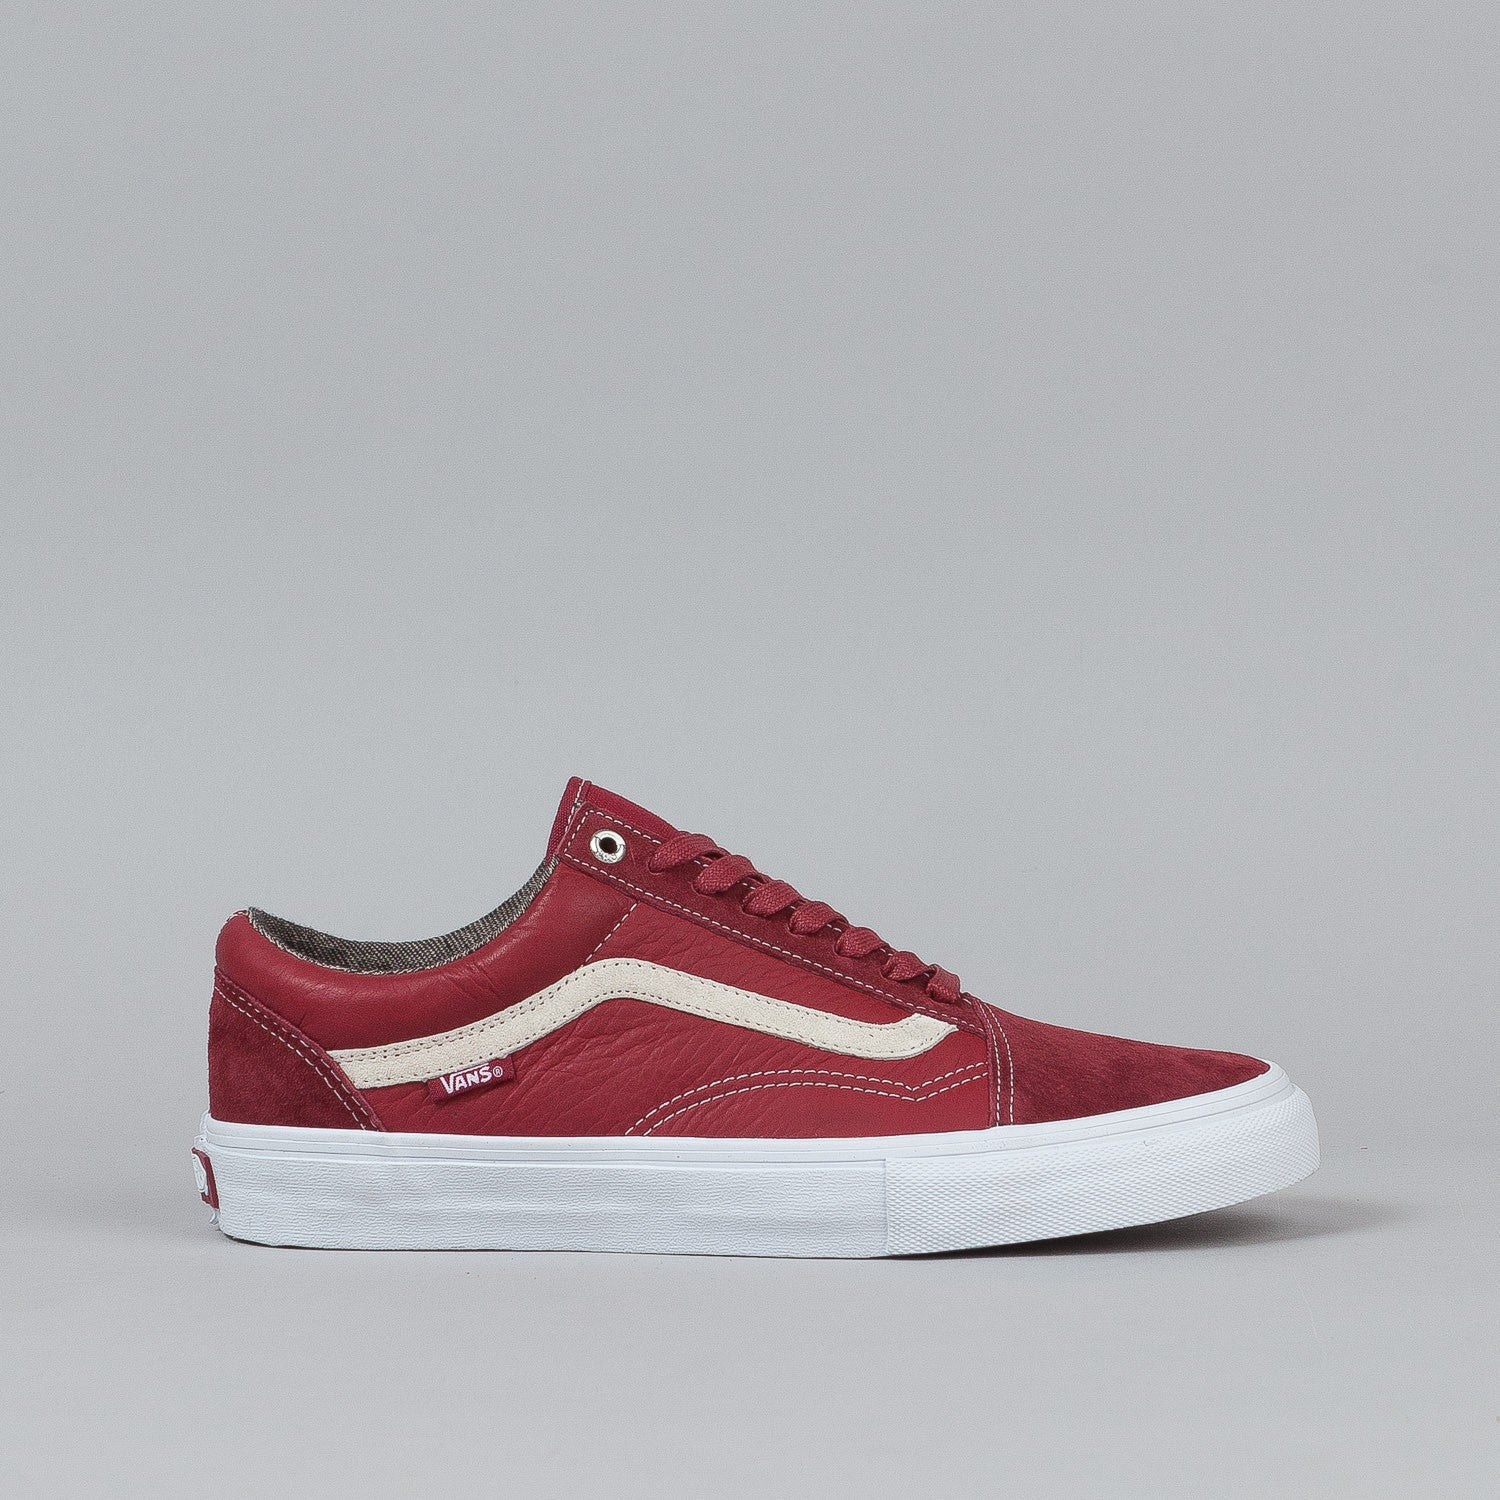 Vans Old Skool Pro Shoes